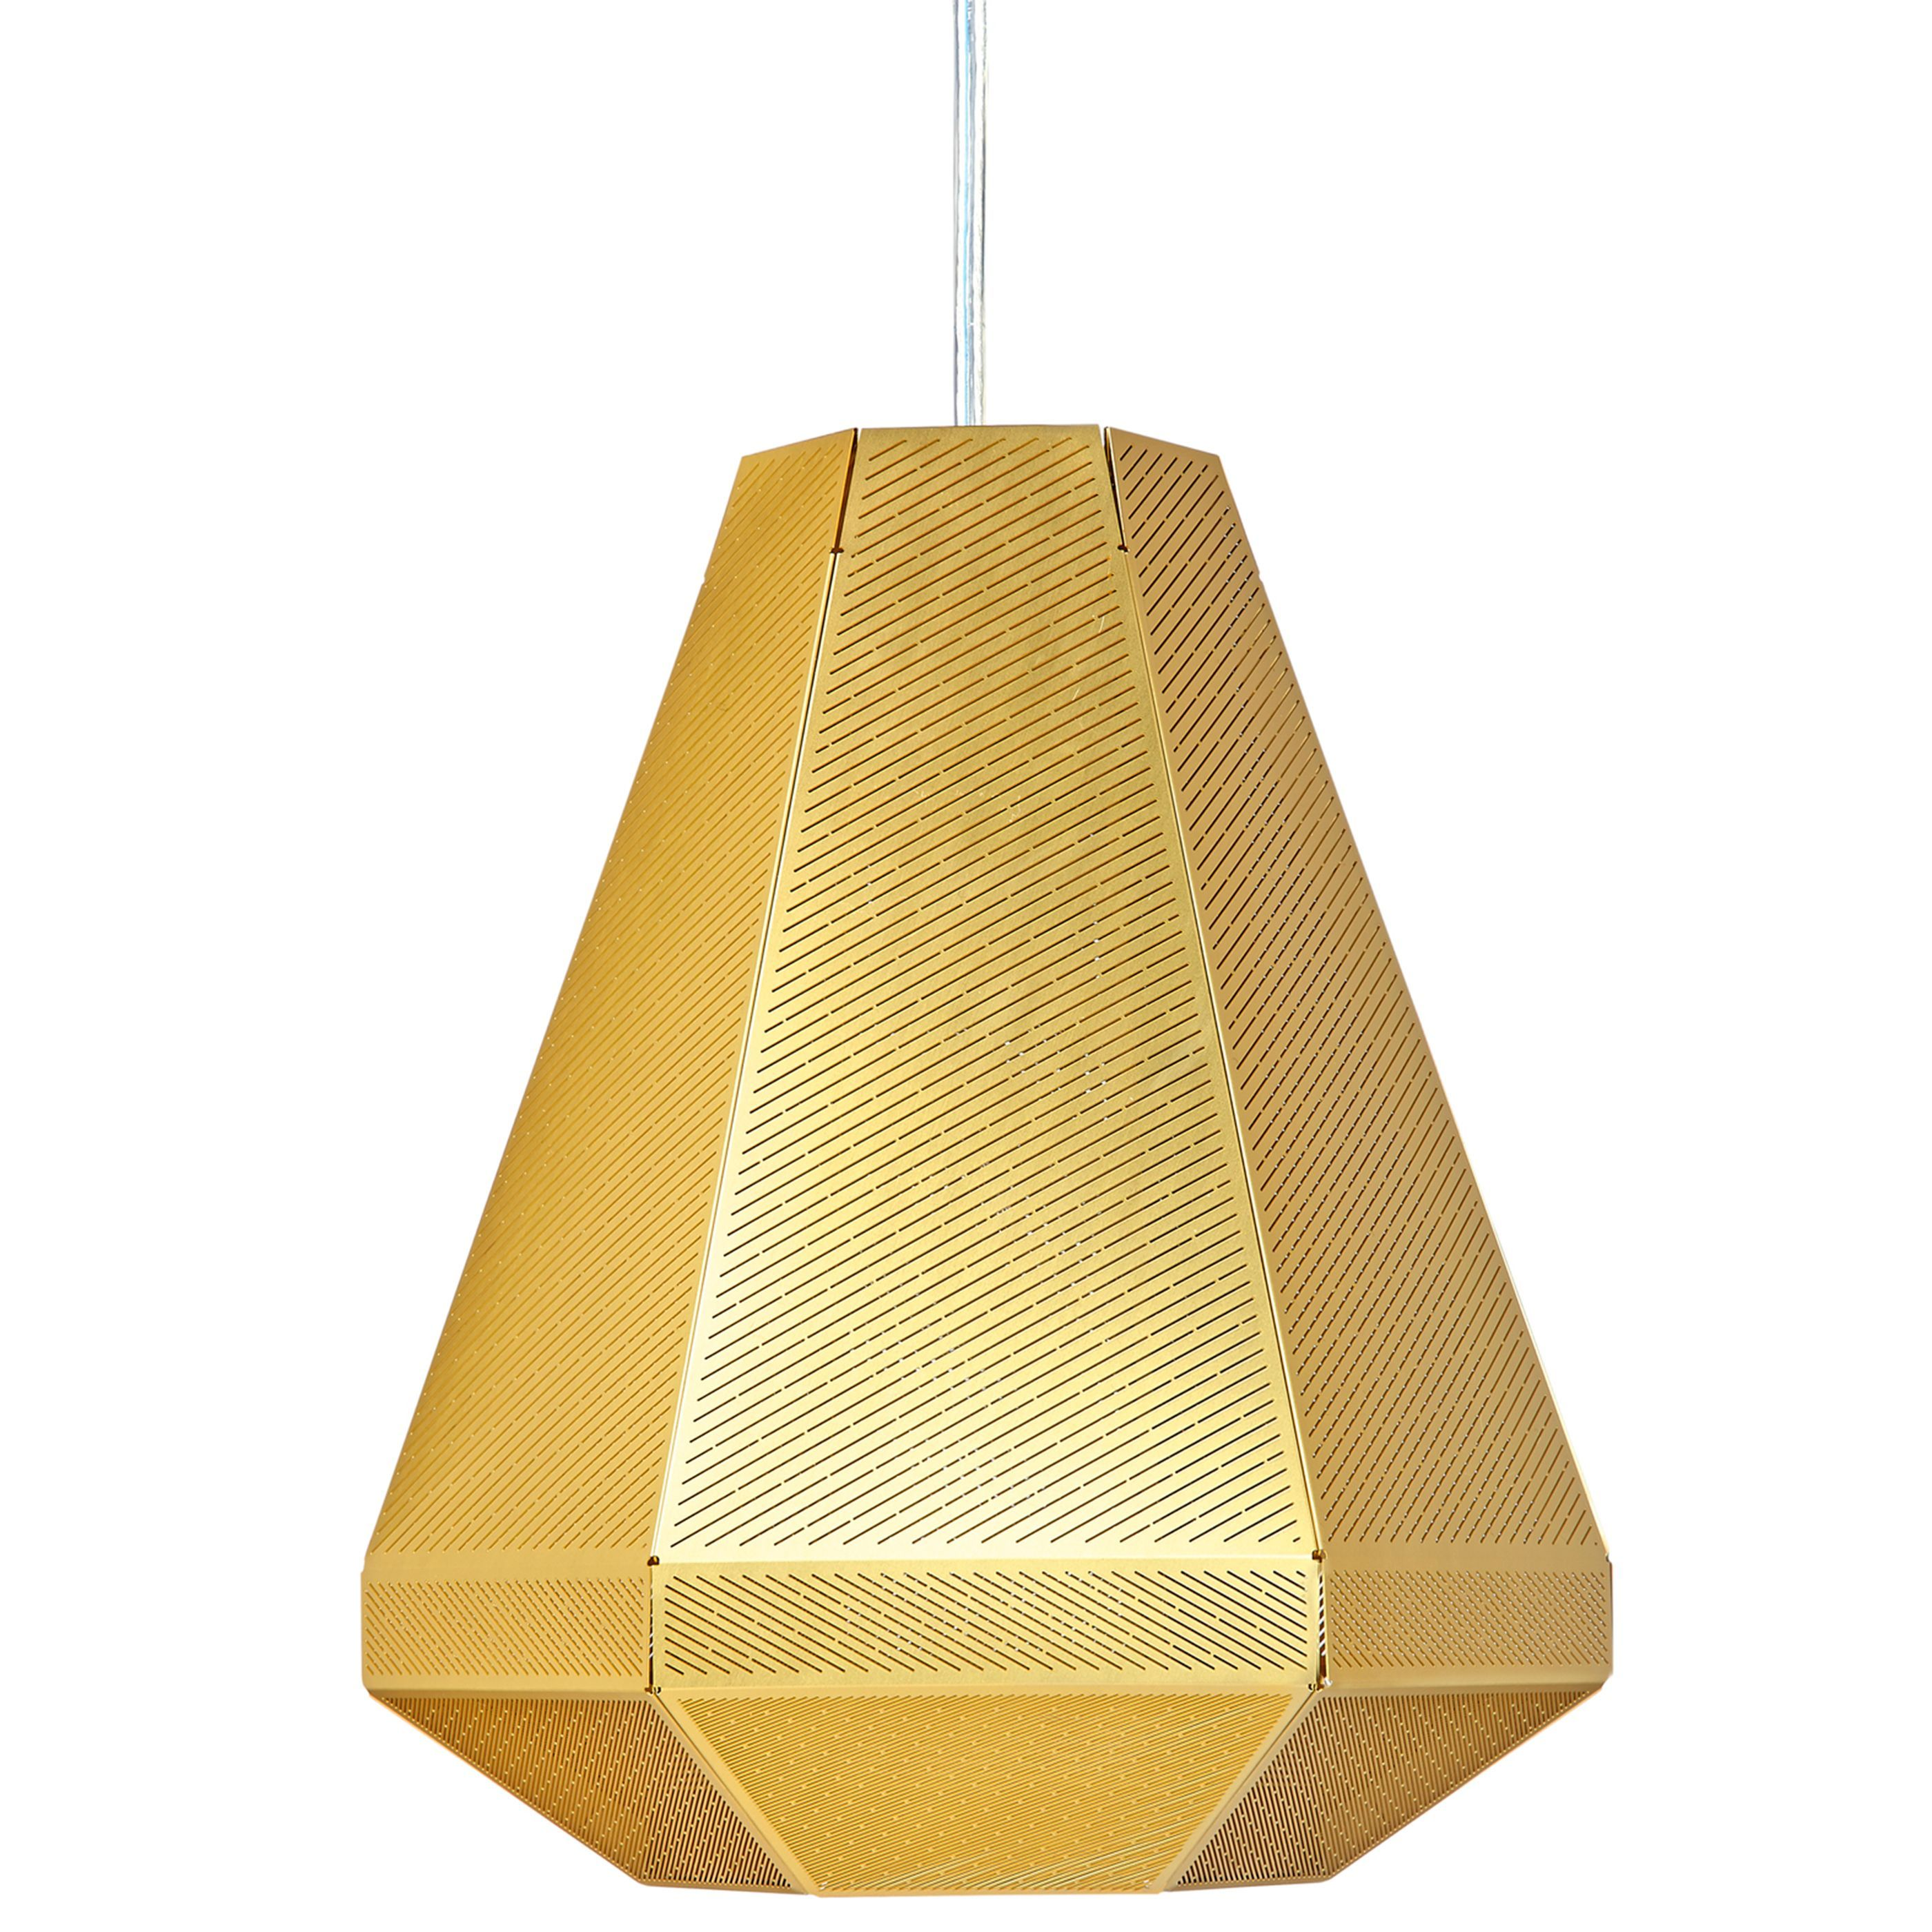 Tom dixon cell tall hanglamp kopen van tom dixon for Lampen celle